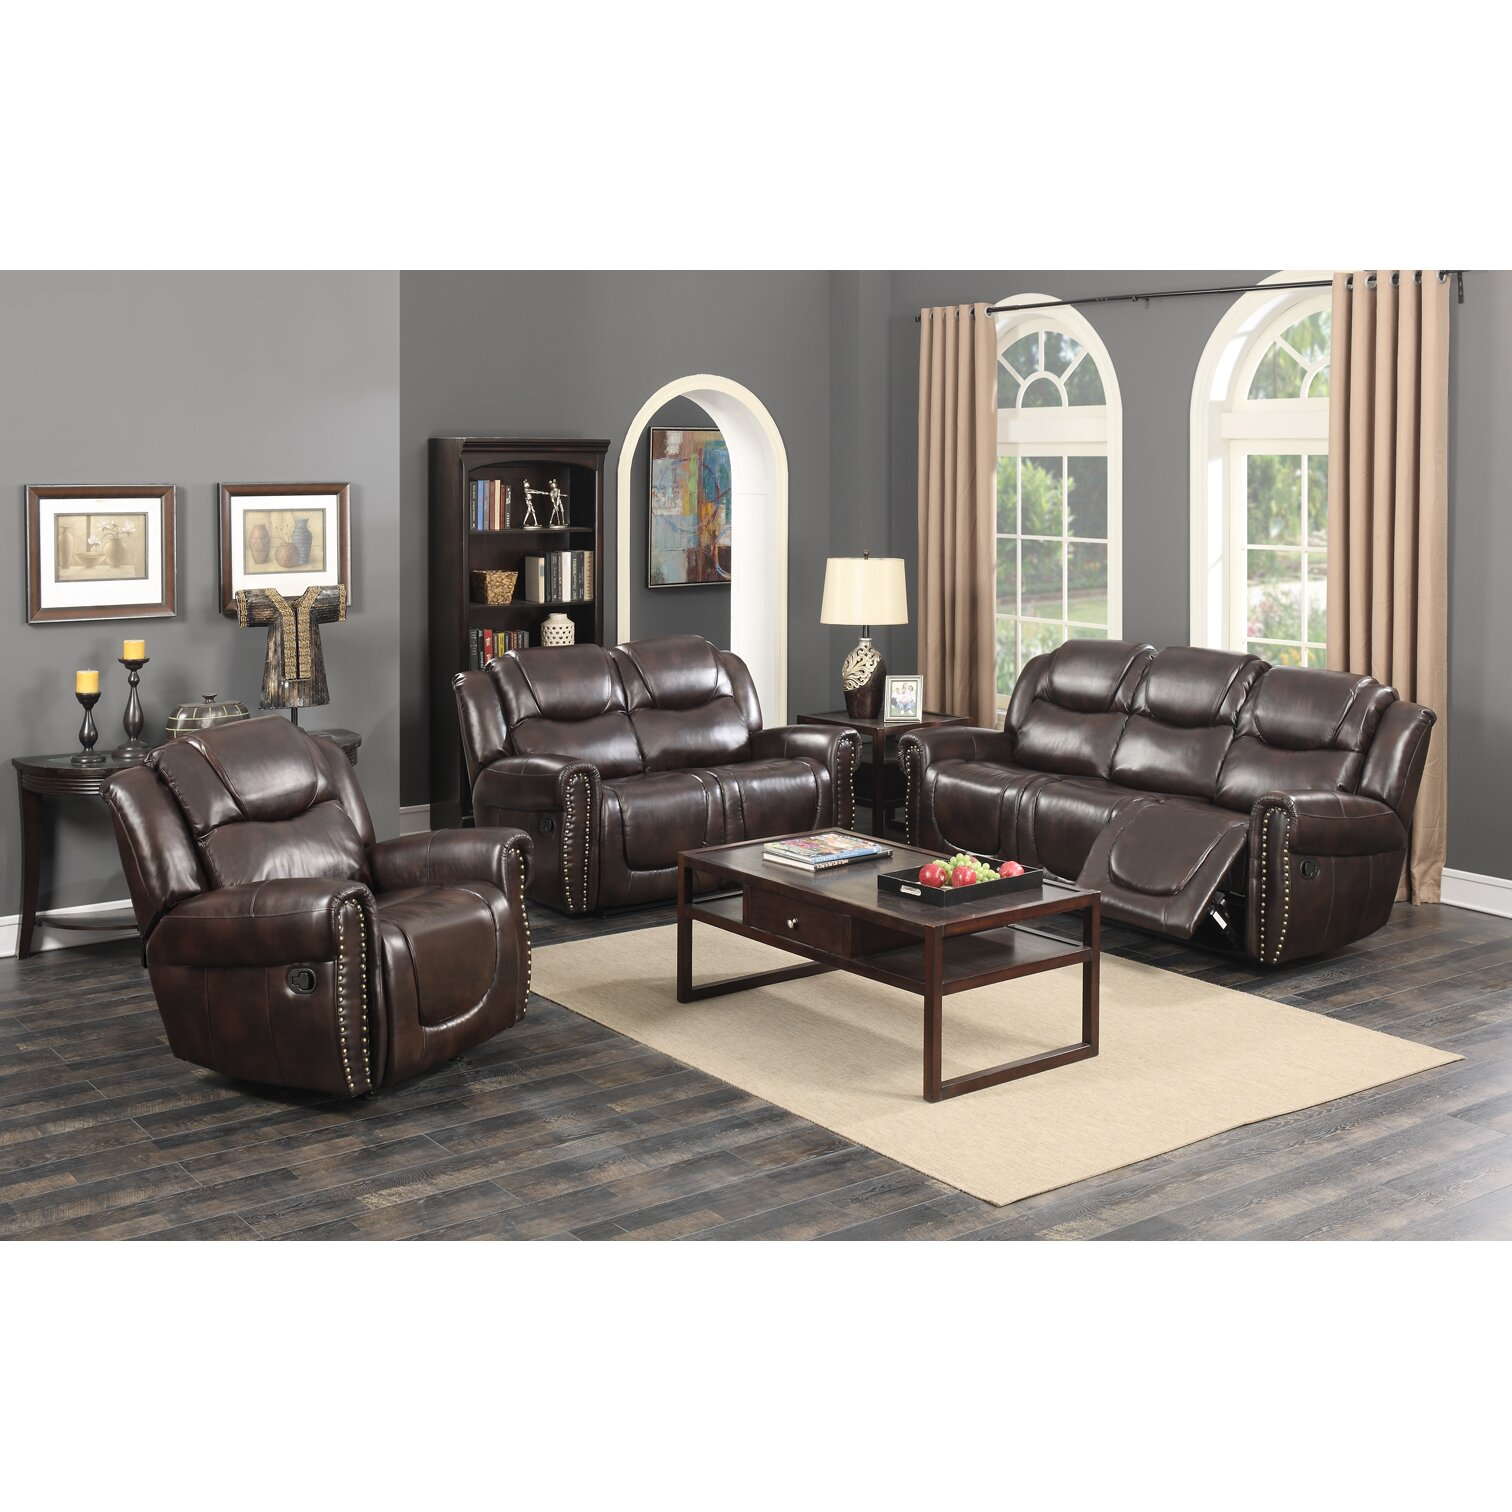 Living Room Sets Reclining: Living In Style Castrol Living Room Reclining Sofa